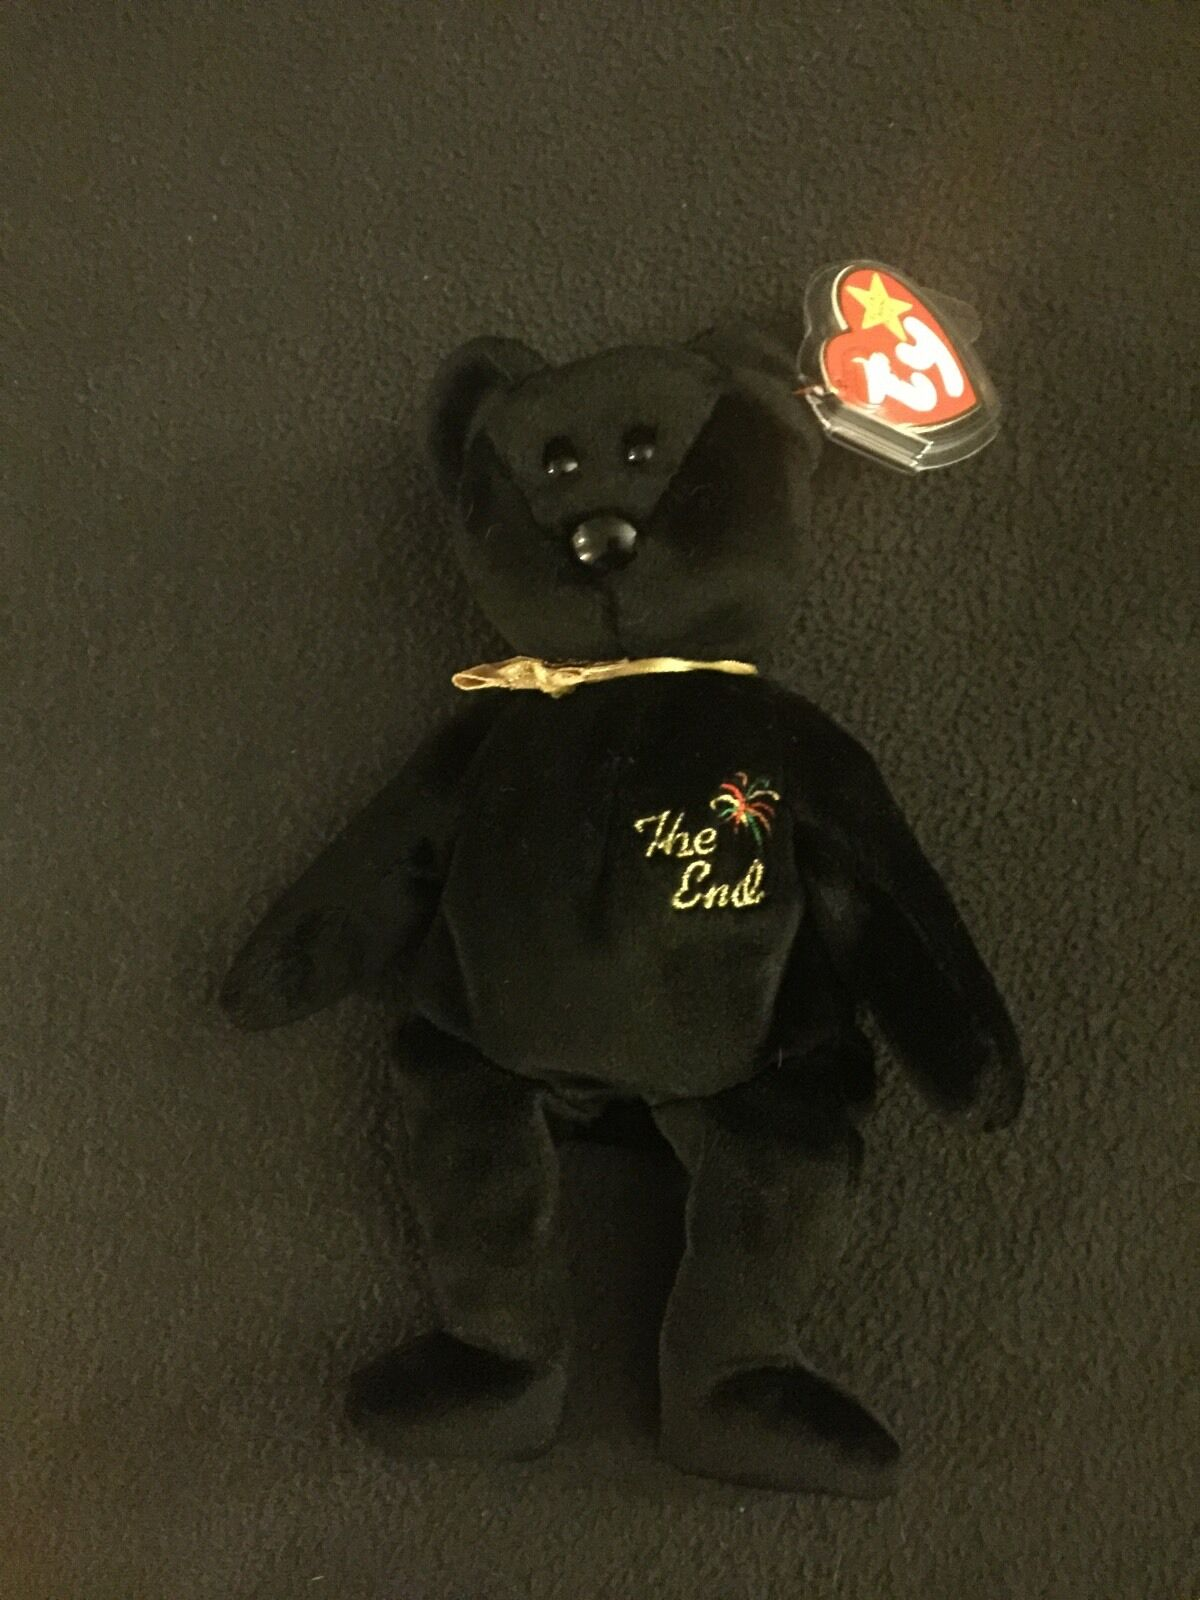 c2c18676910 Rare Beanie Babies The 1999 No Tag Date And Punctuation Error End Ty ...